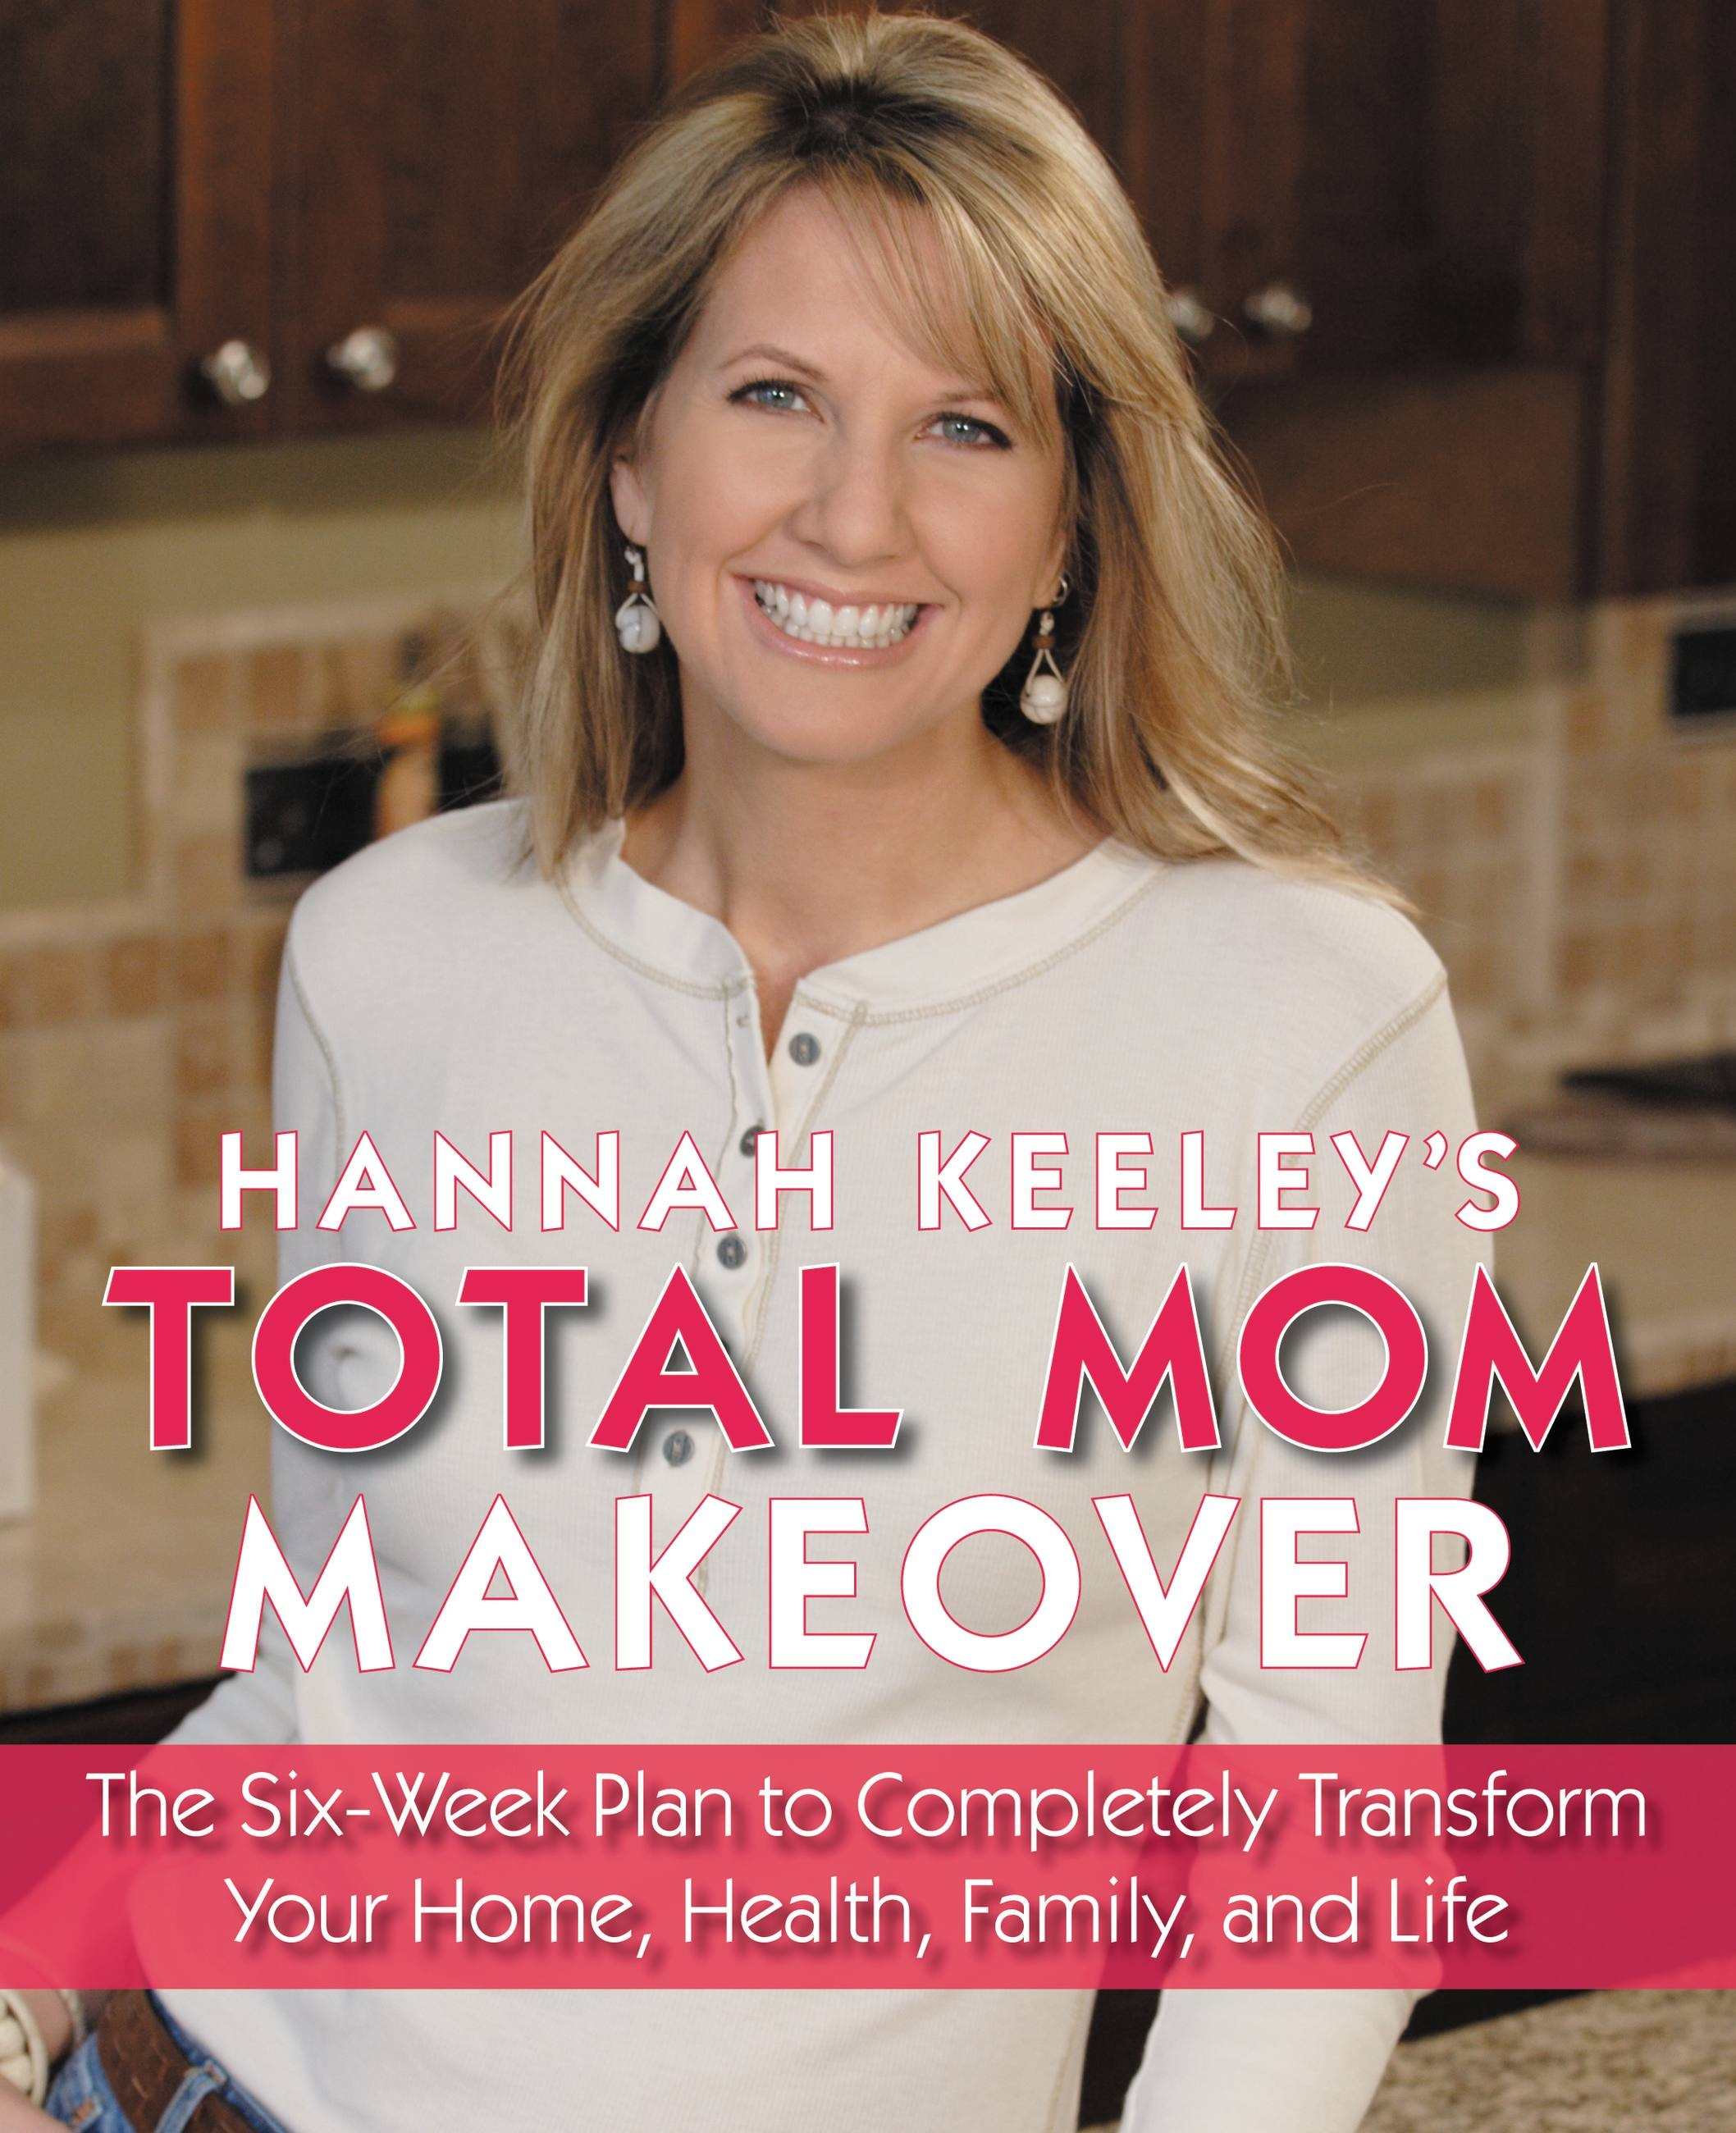 Hannah Keeley's Total Mom Makeover